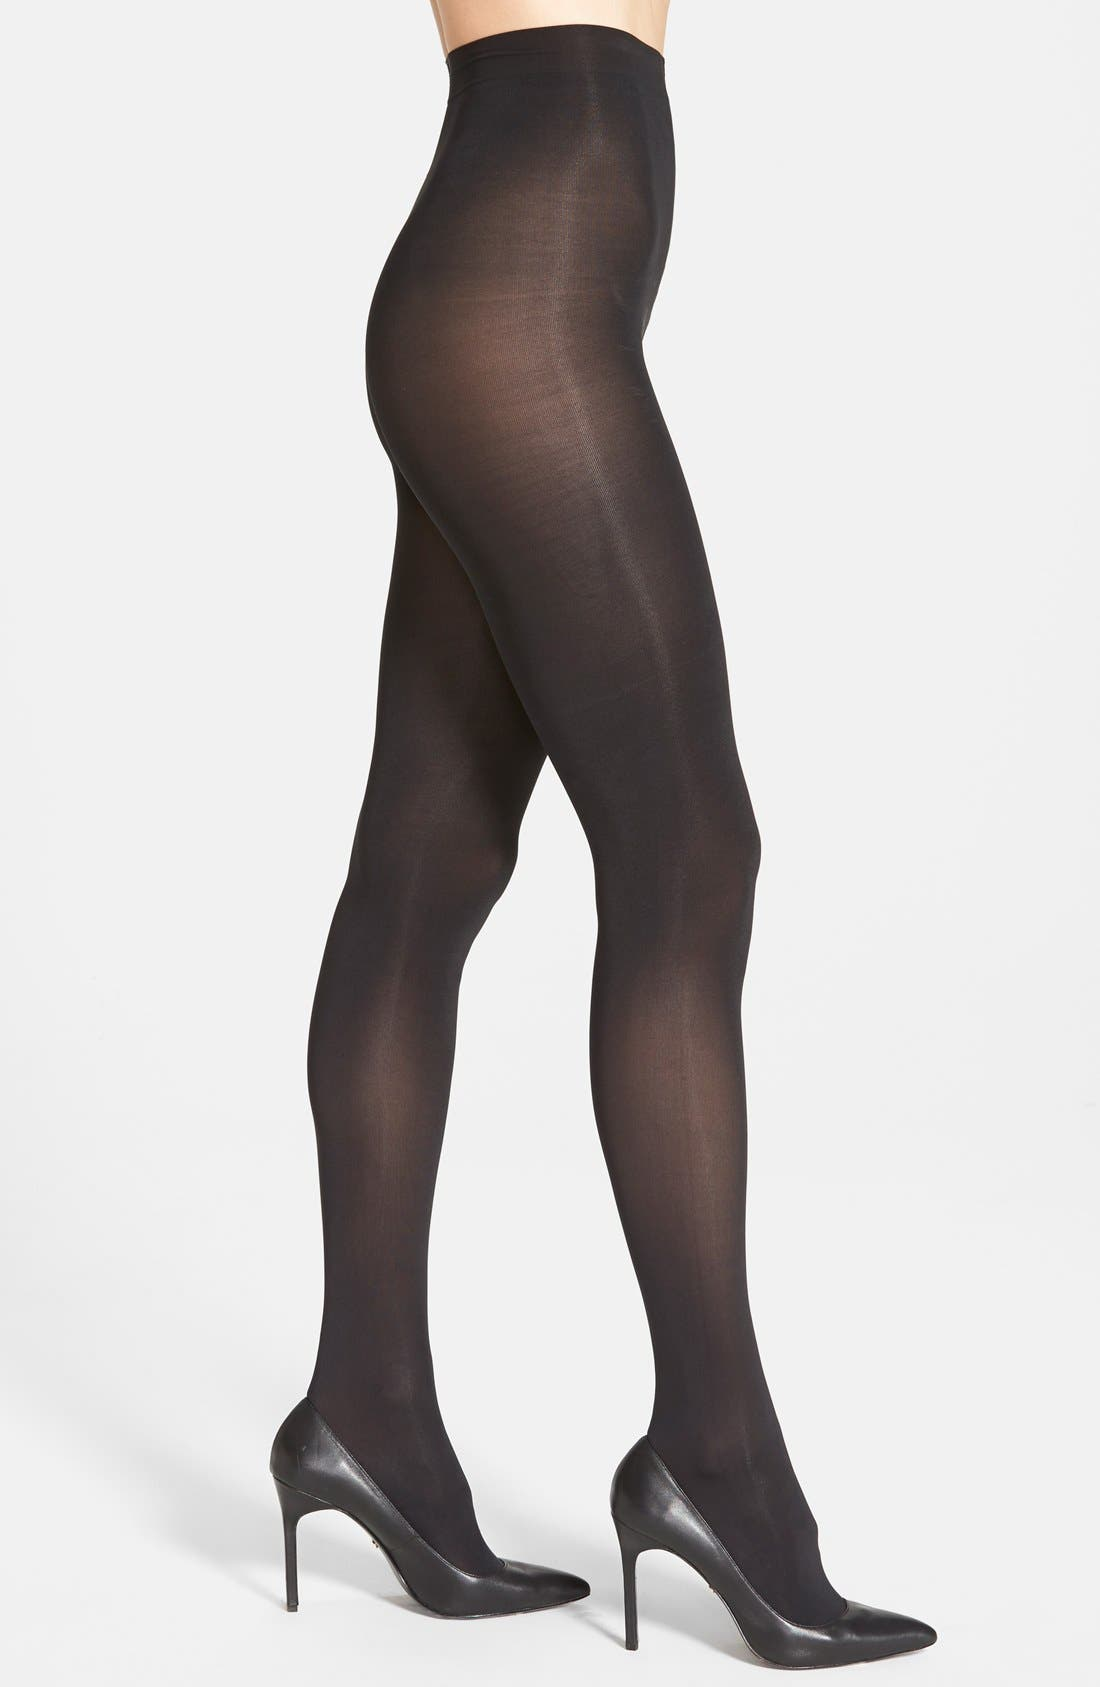 Alternate Image 1 Selected - Donna Karan 'Evolution' Satin Jersey Tights